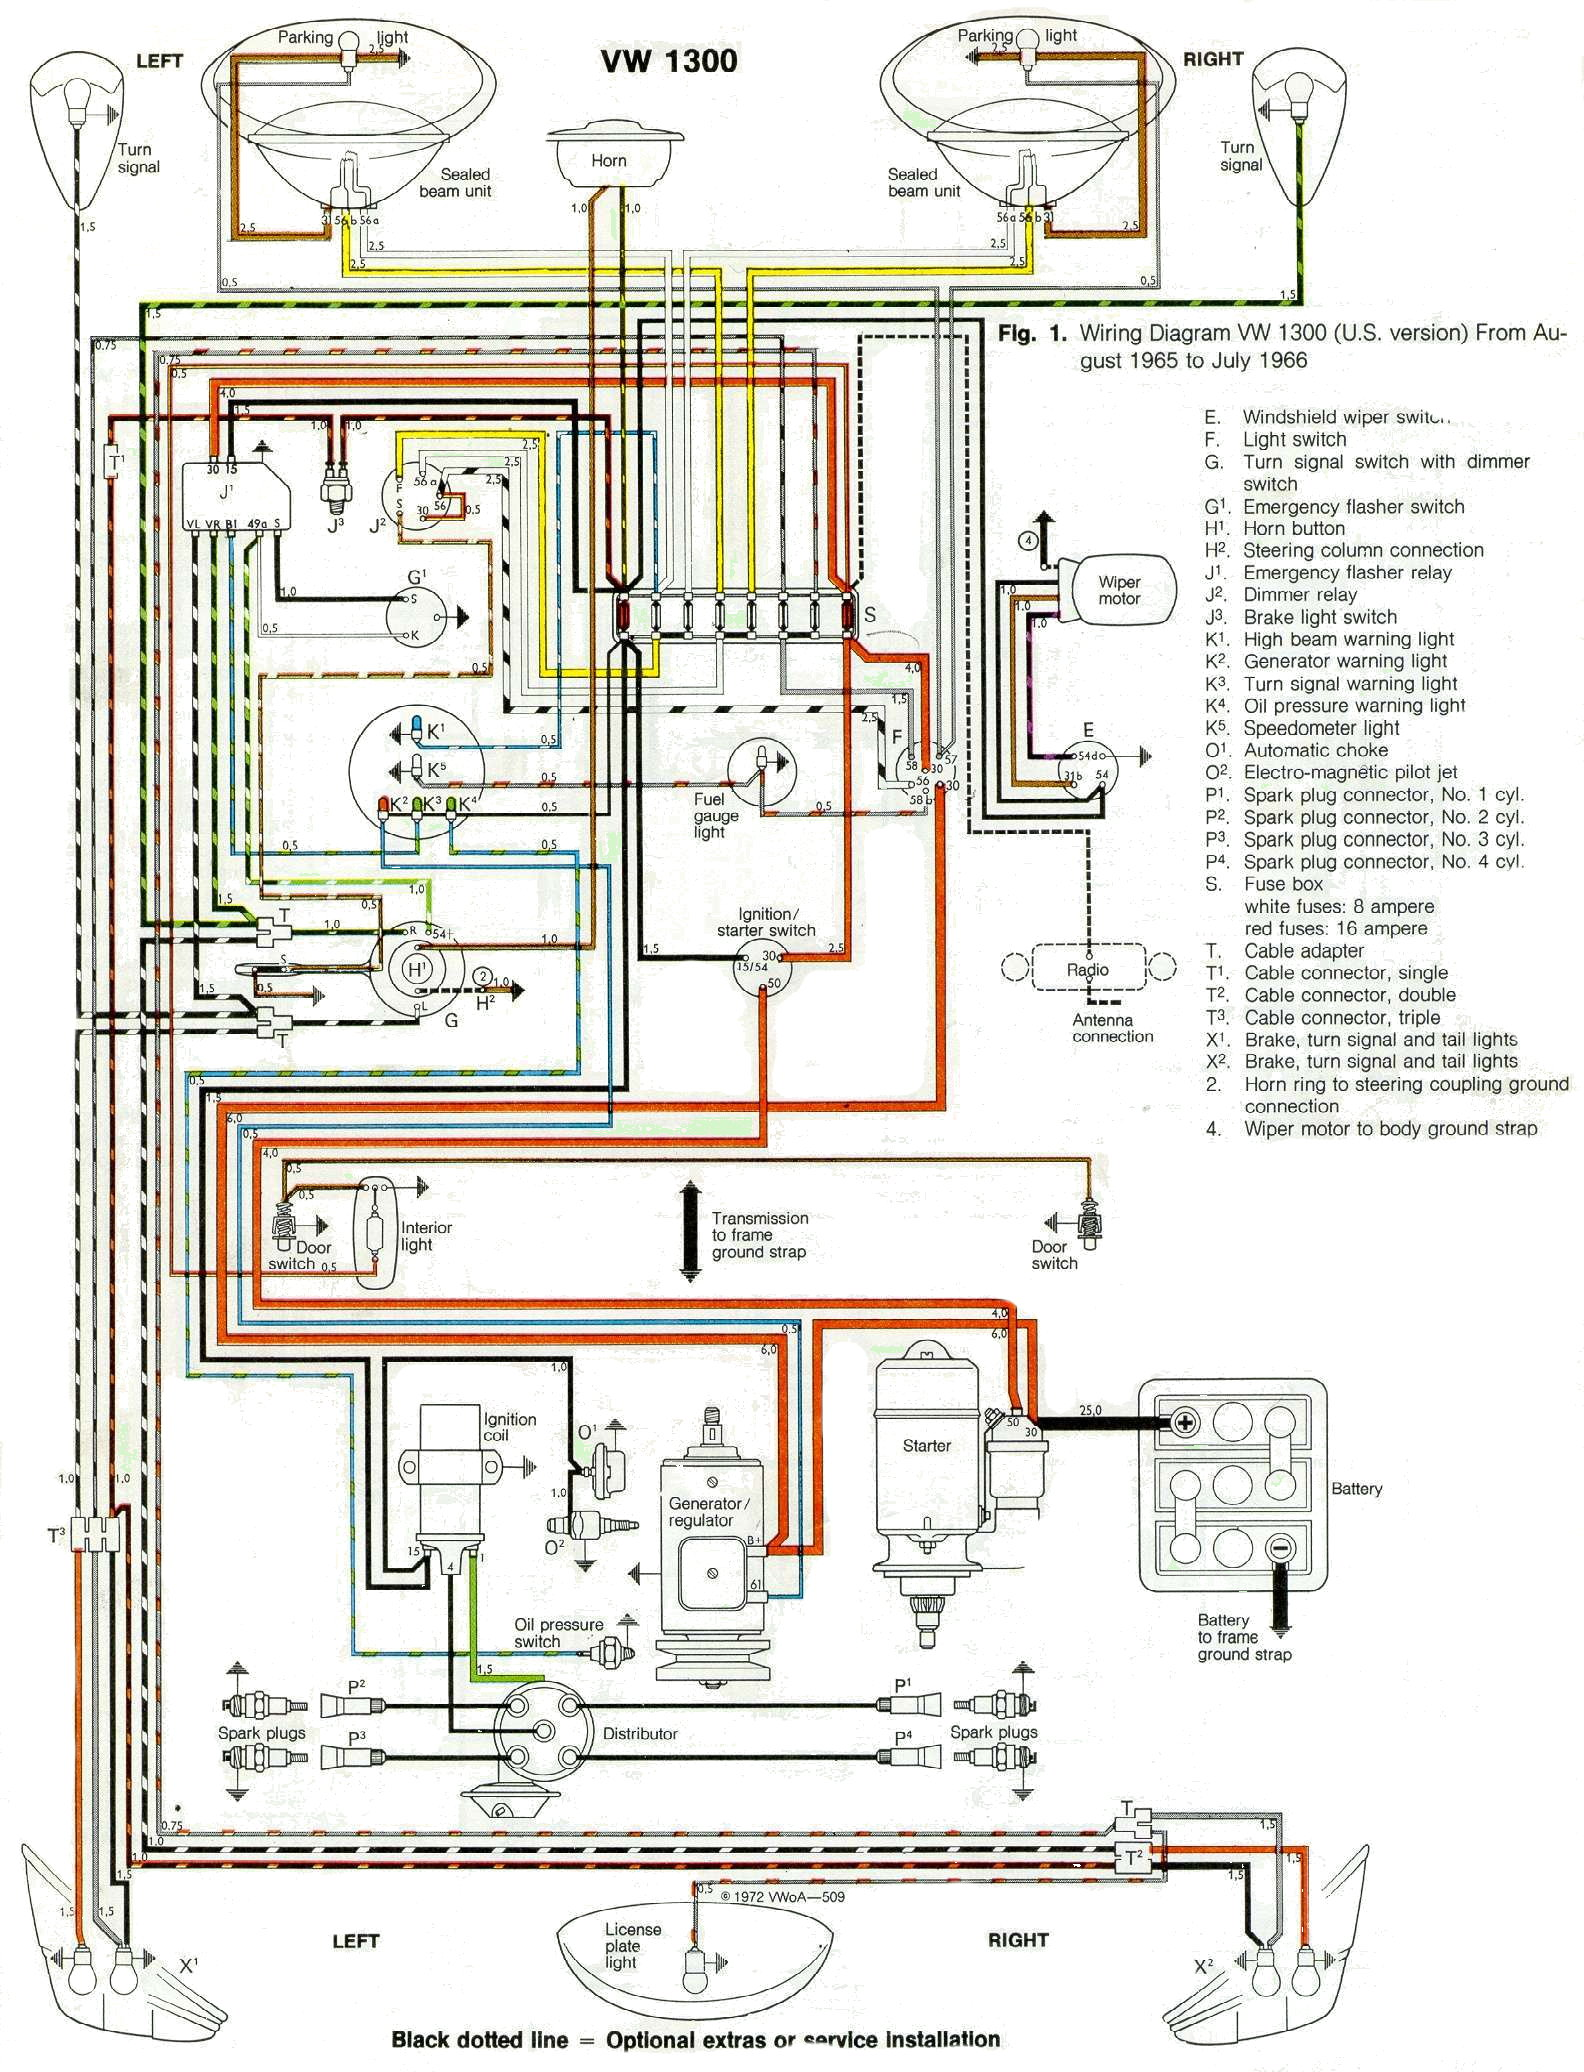 1966 Wiring 1966 wiring diagram vw beetle wiring diagram at cita.asia